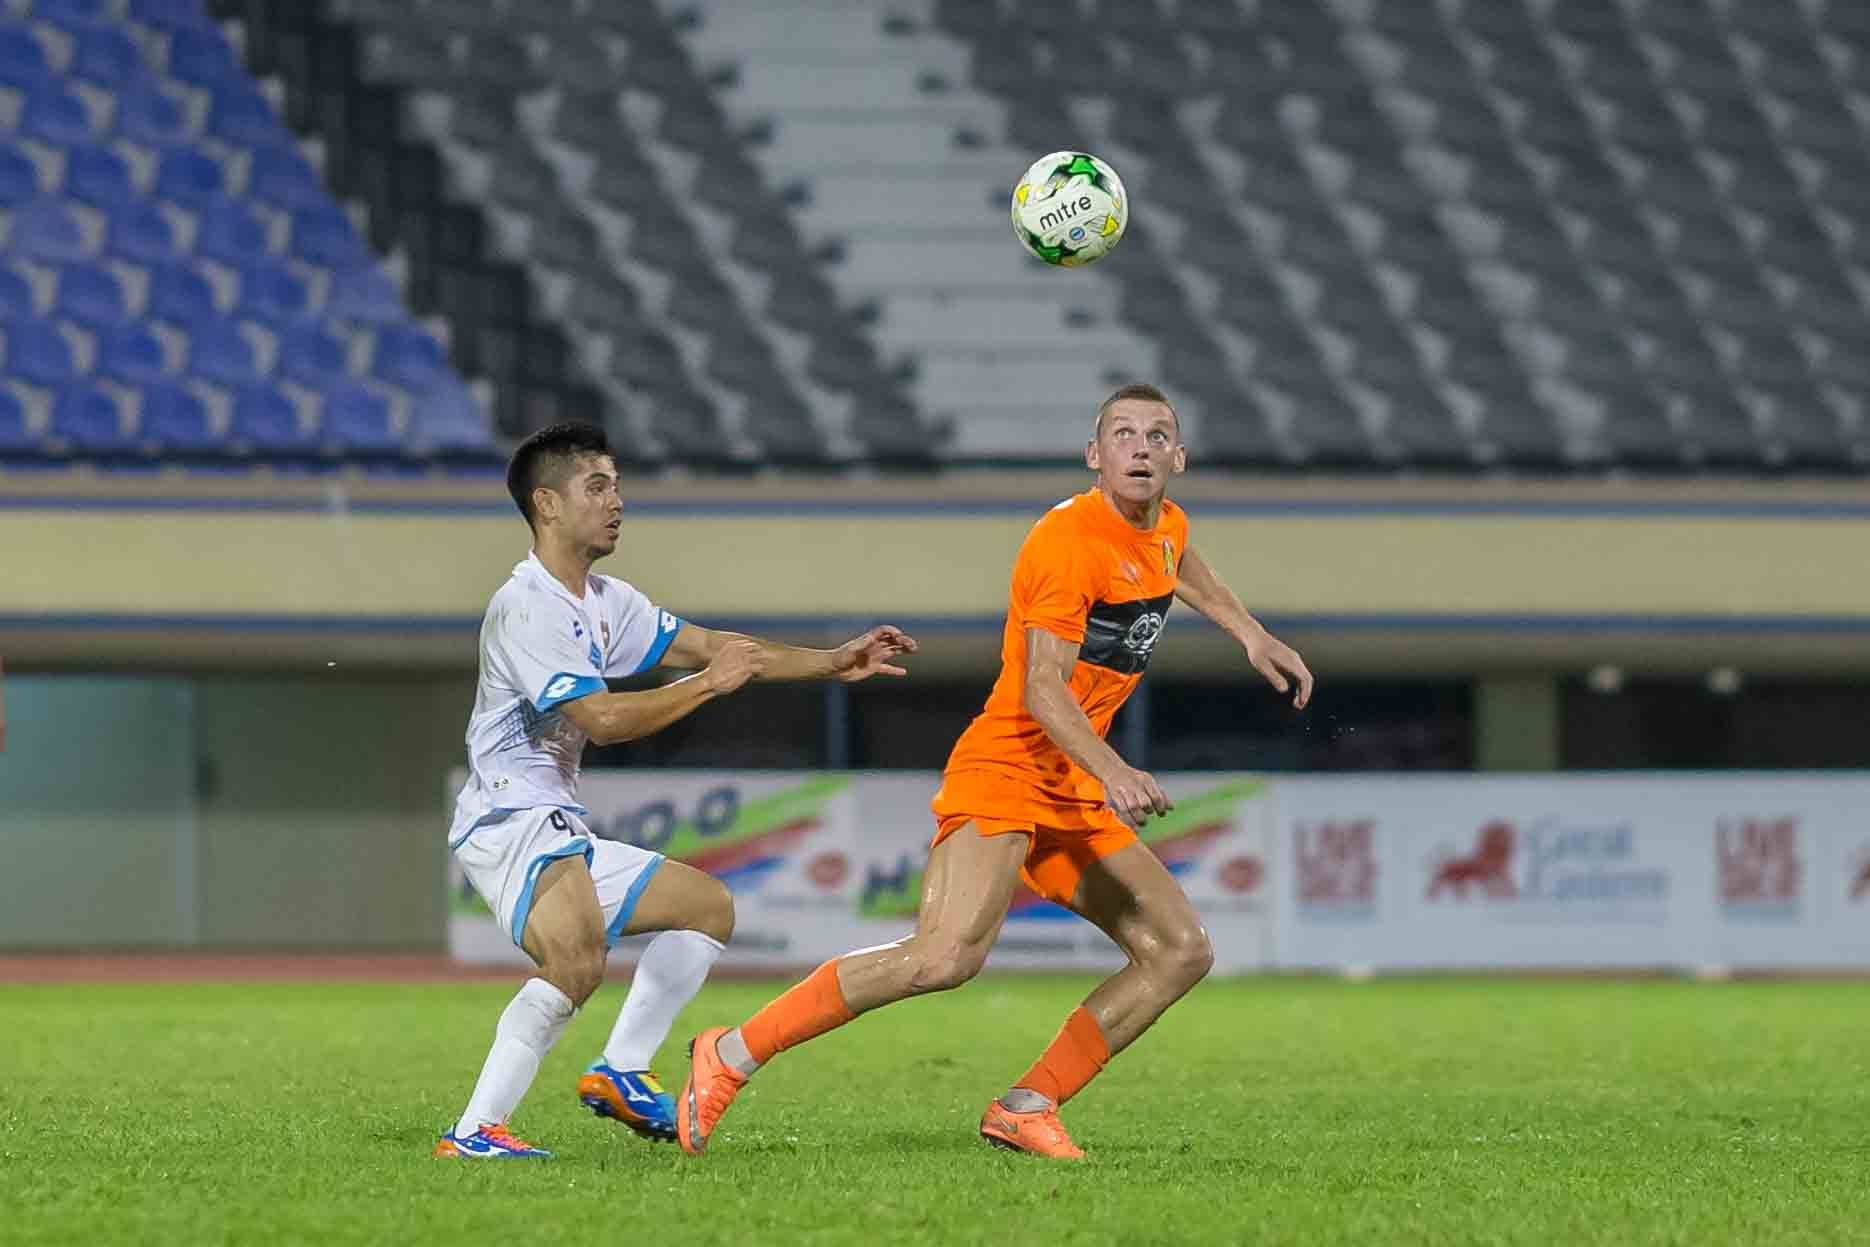 Jozef Kaplan scored his 1st goal for the Cheetahs against DPMM.